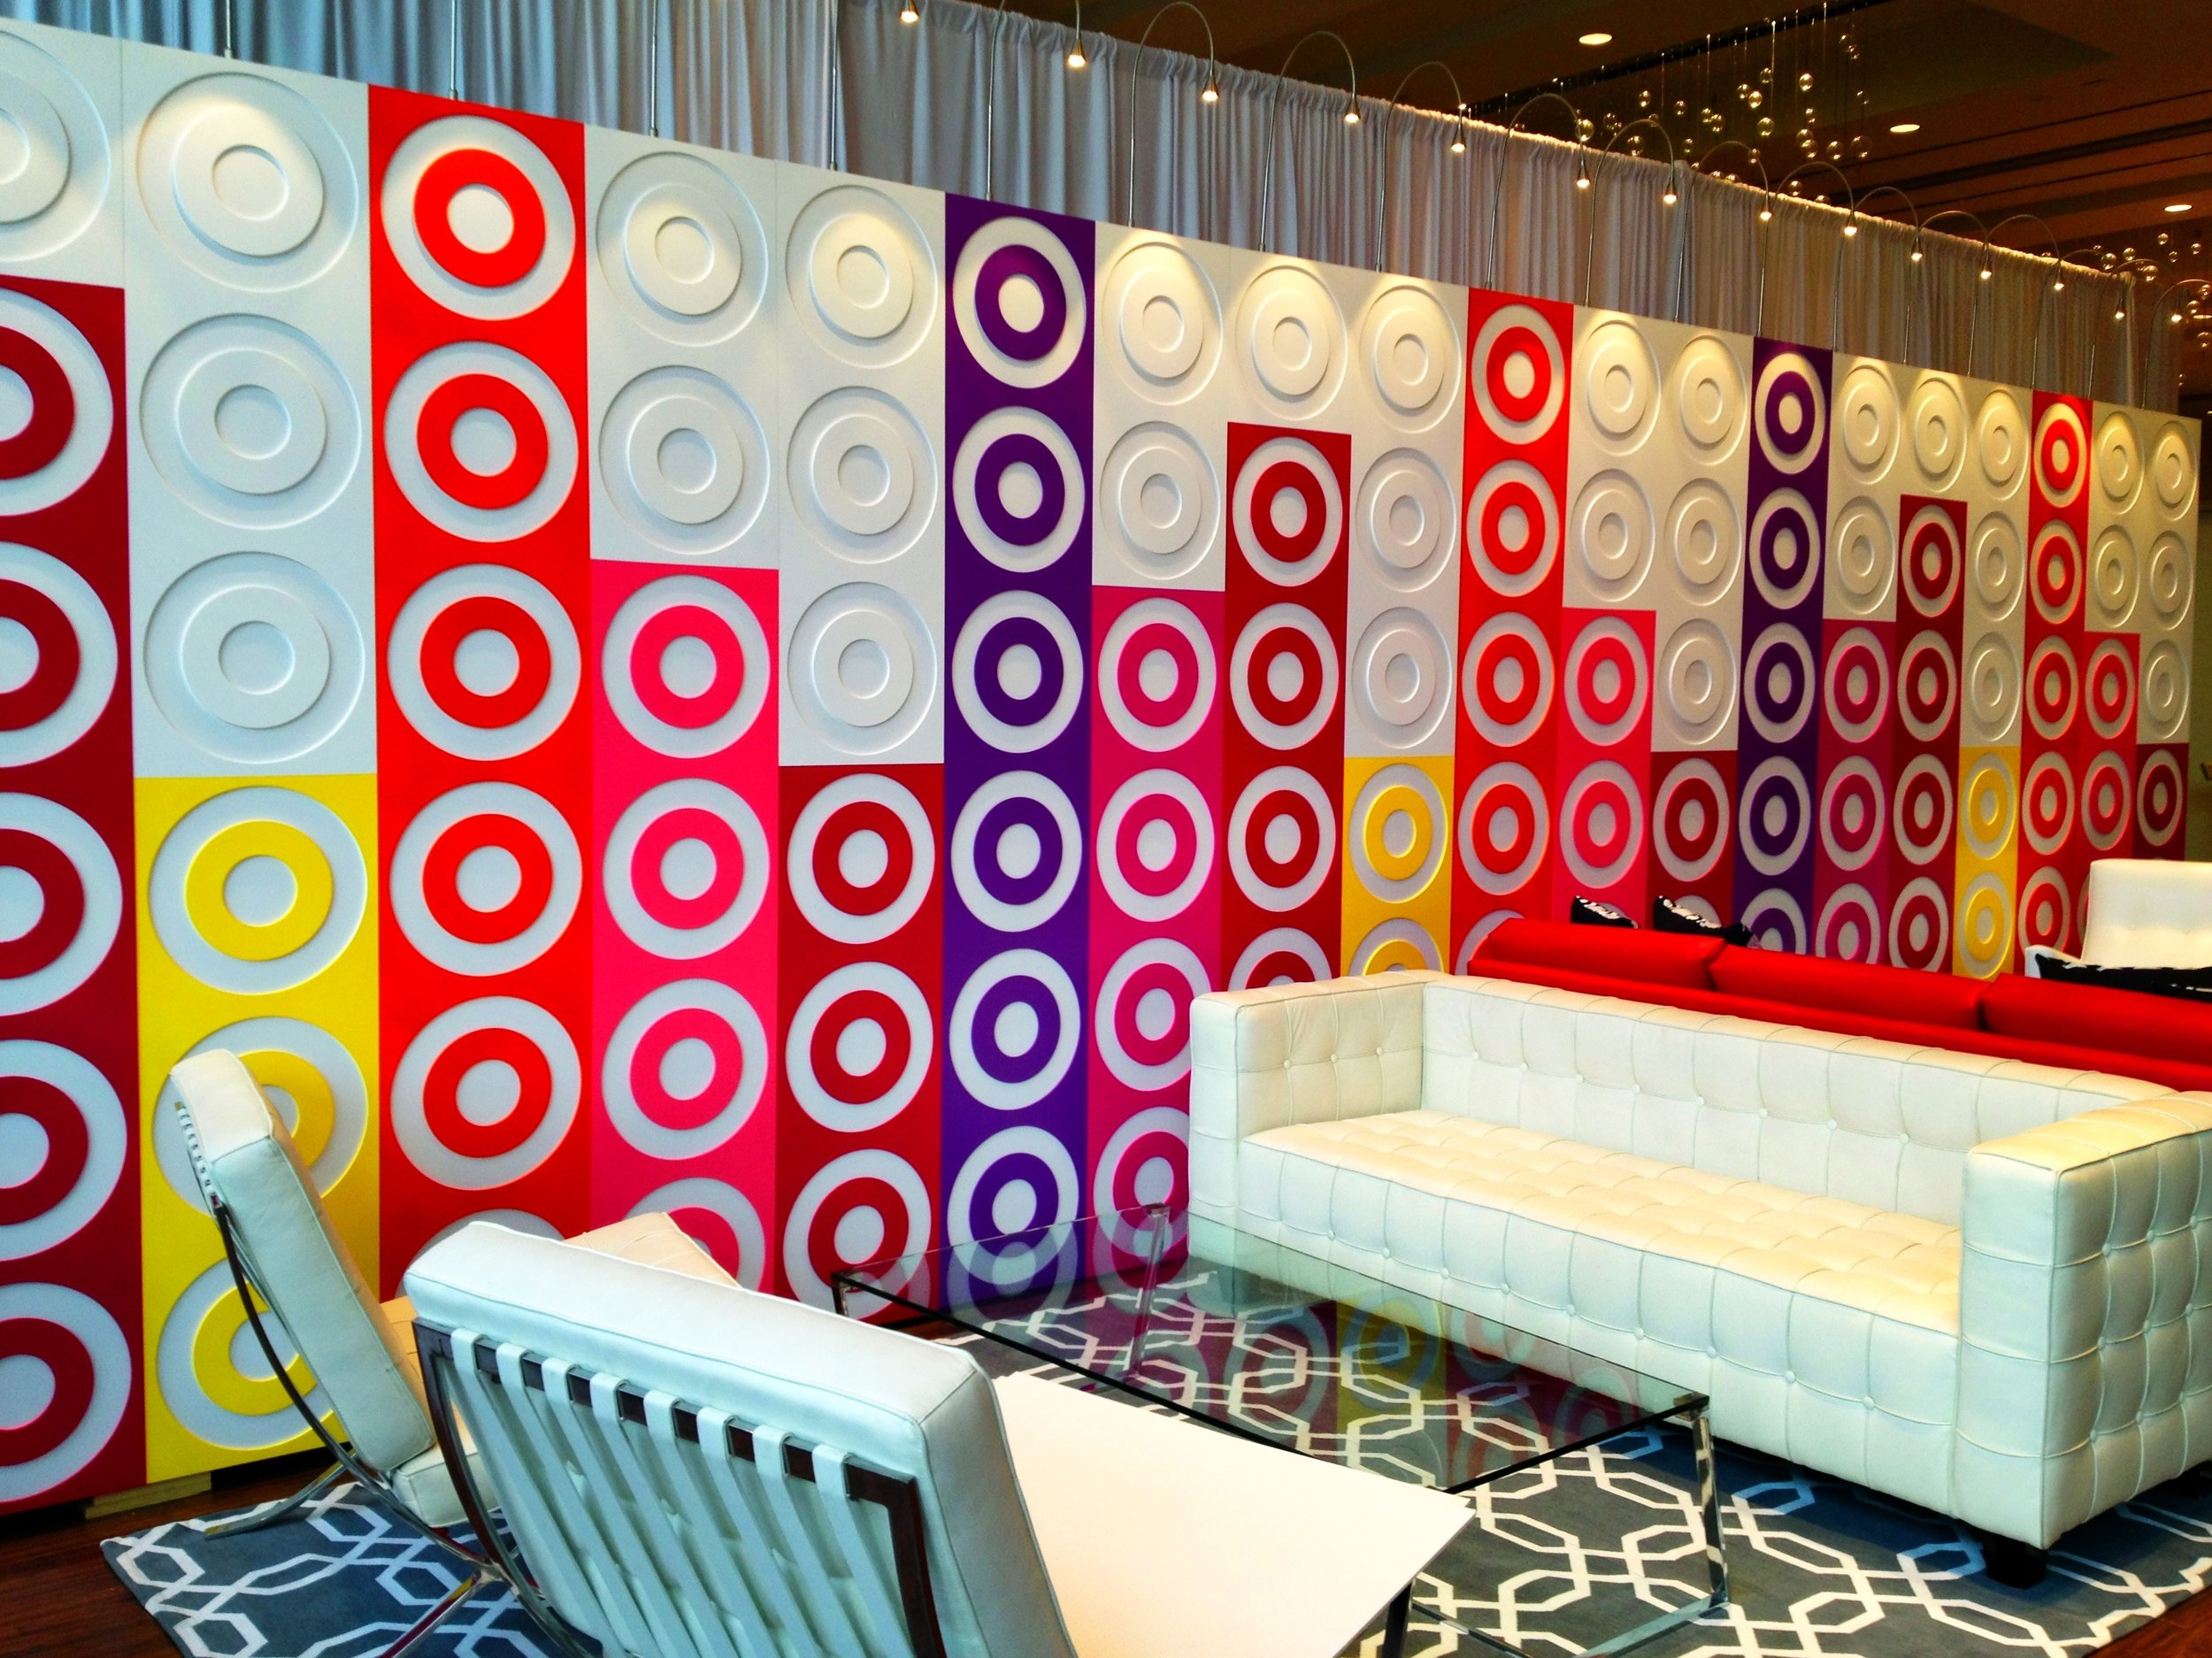 Target lounge with branded wall in bright colors.jpg